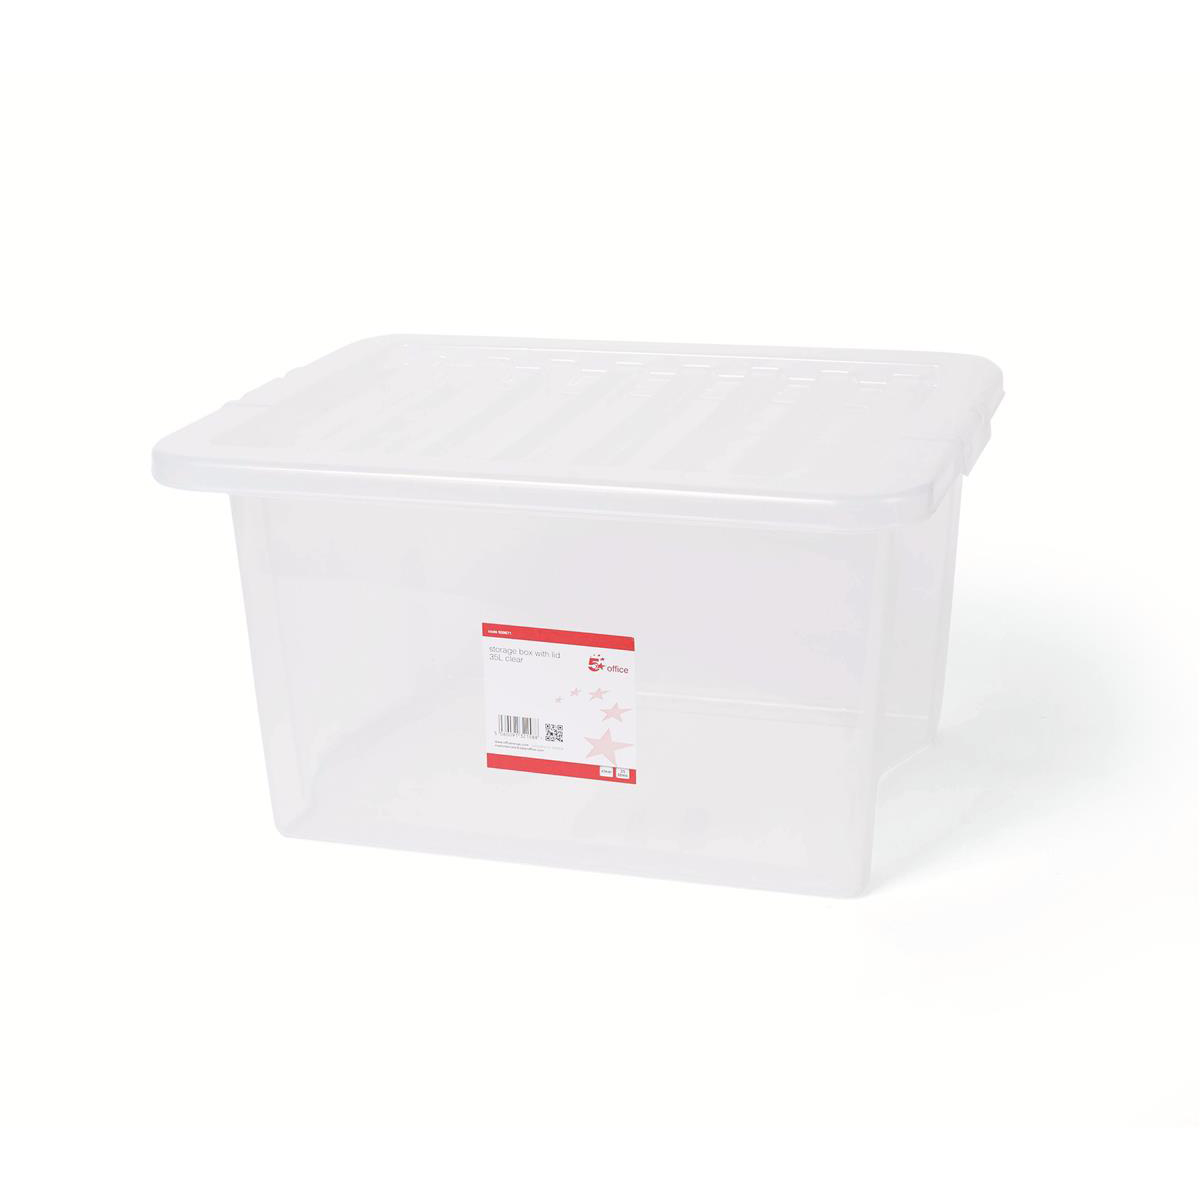 Storage Boxes 5 Star Office Storage Box Plastic with Lid Stackable 35 Litre Clear